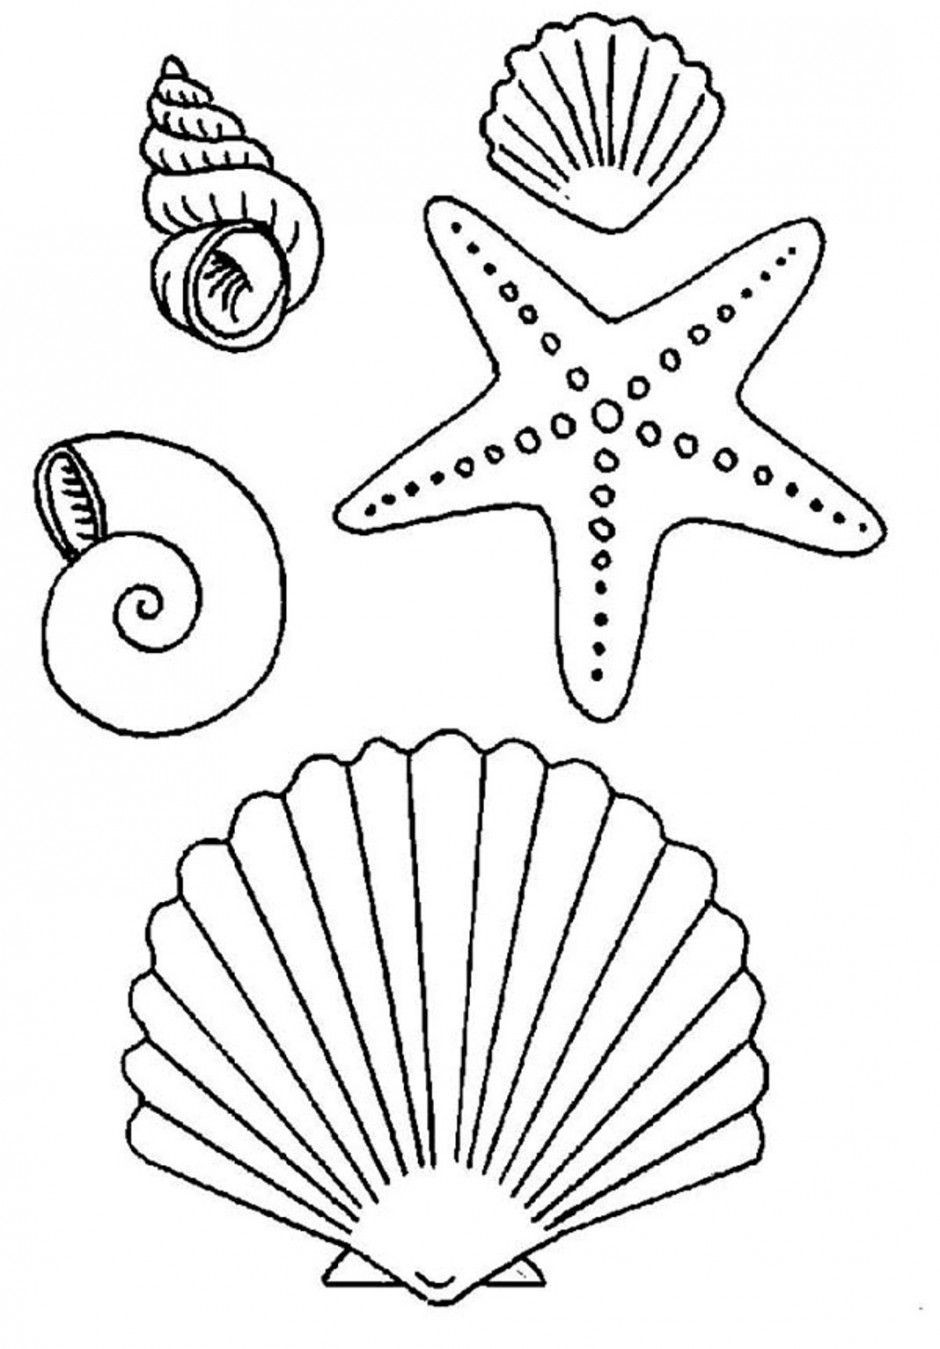 Seashell Template Free Printable